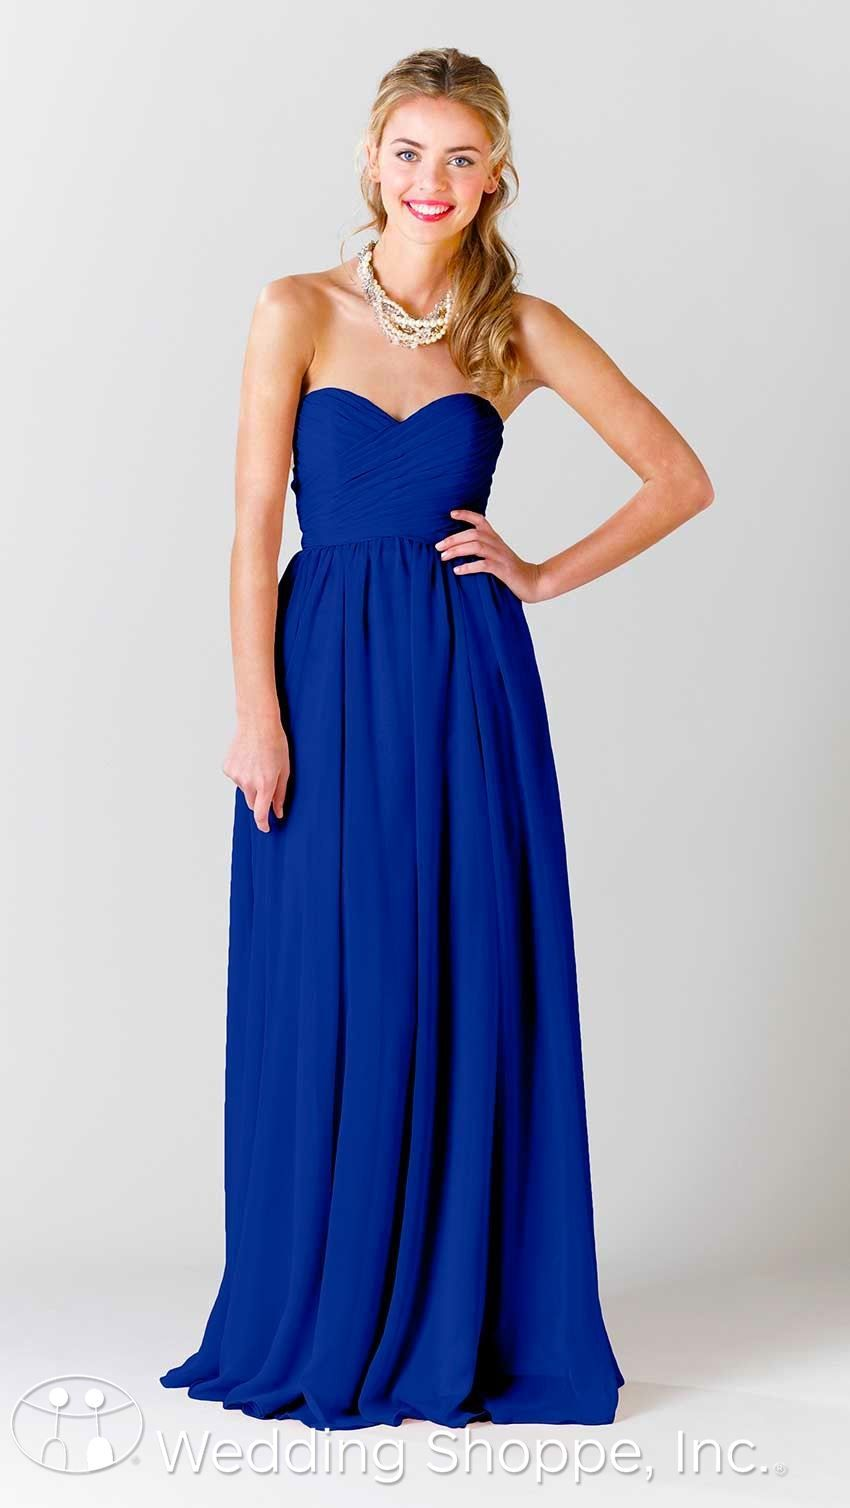 When the Night is Young in Royal Blue - BRIDESMAID  A beautiful ...